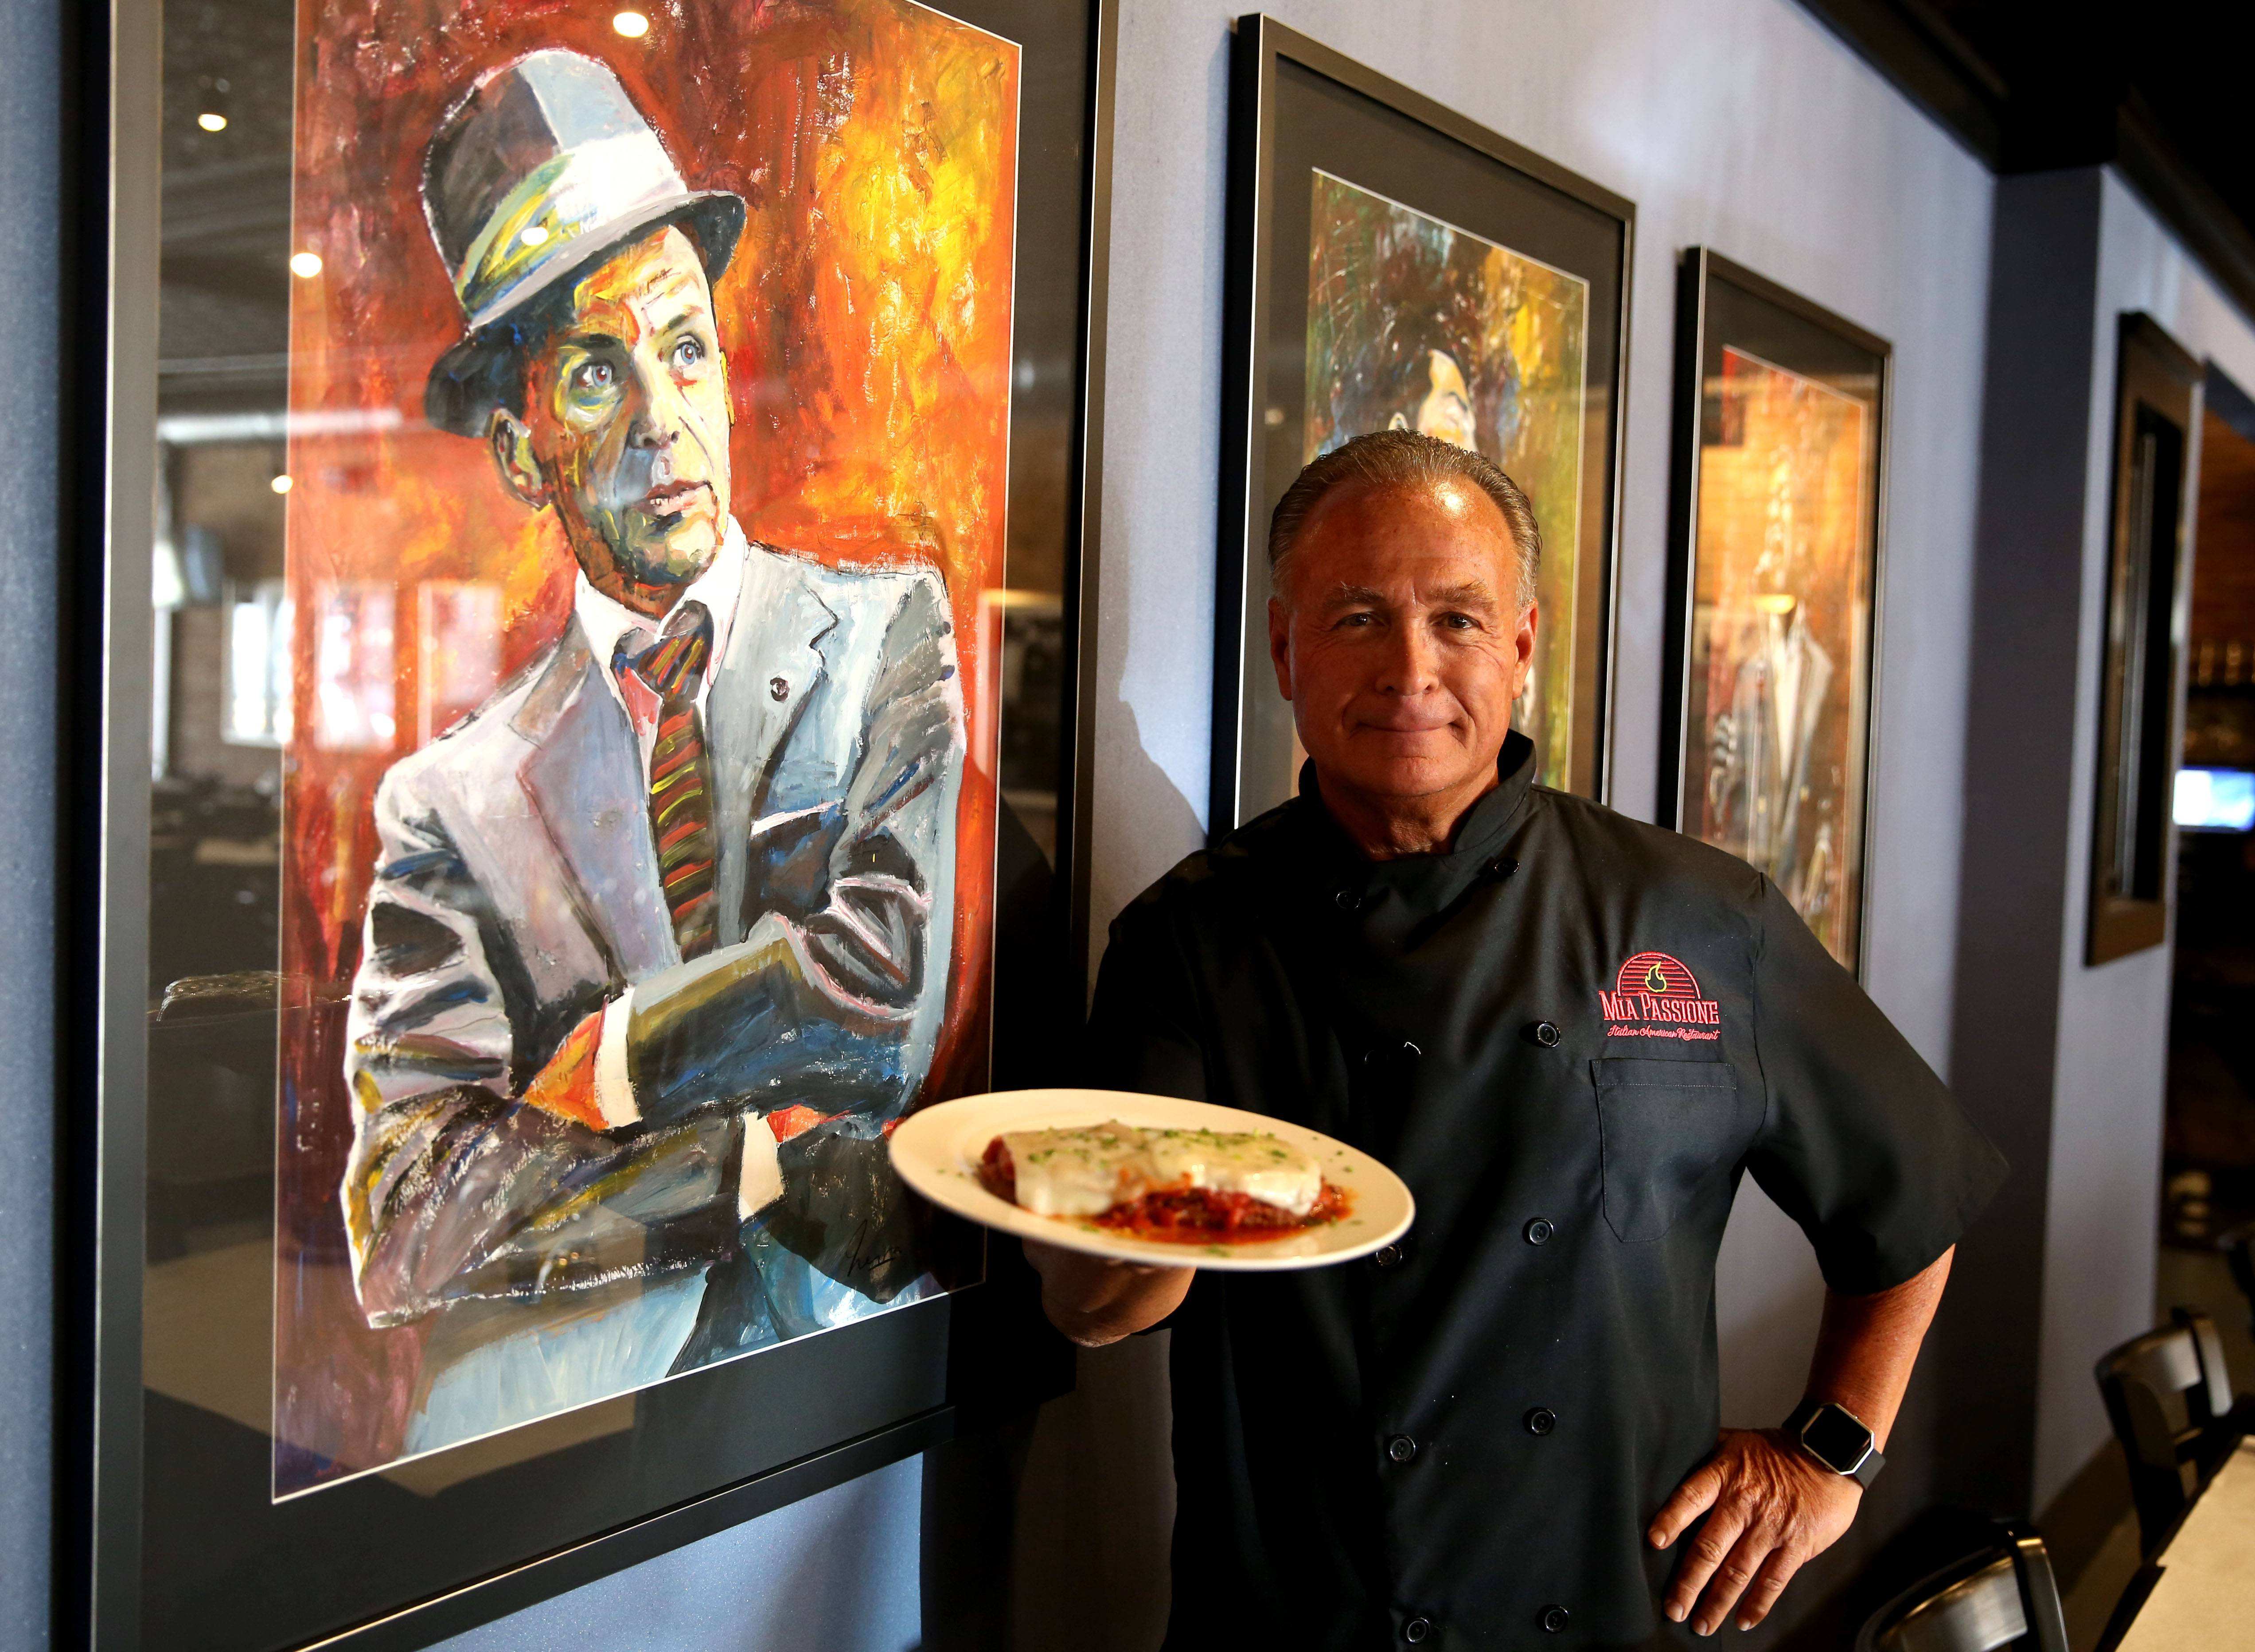 Chef-owner Michael Palmieri, holding a plate of eggplant parmigiana, recently opened a second location of Mia Passione, this time in Woodstock.